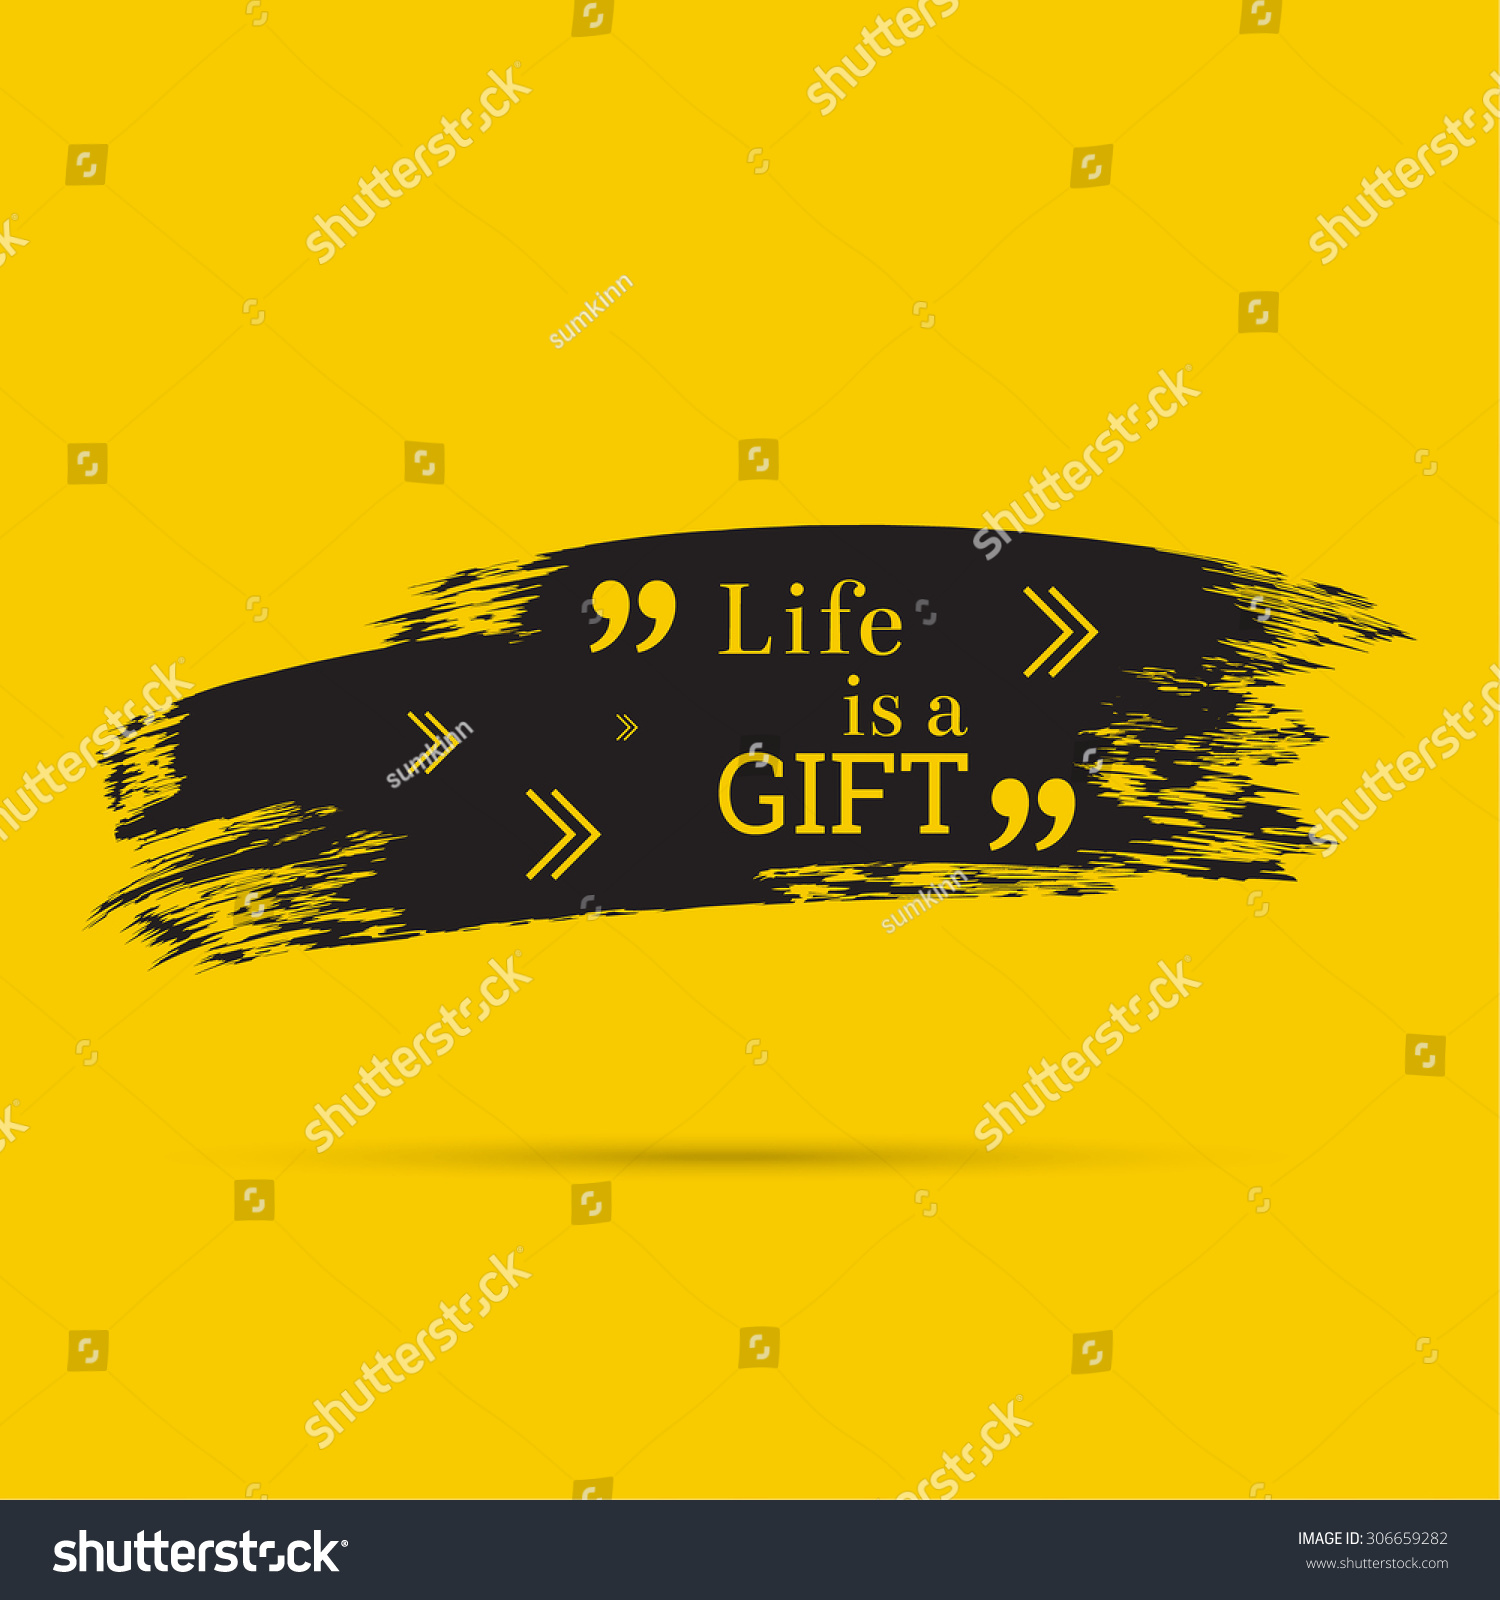 Wise Sayings And Quotes About Life Inspirational Quote Life Gift Wise Saying Stock Vector 306659282